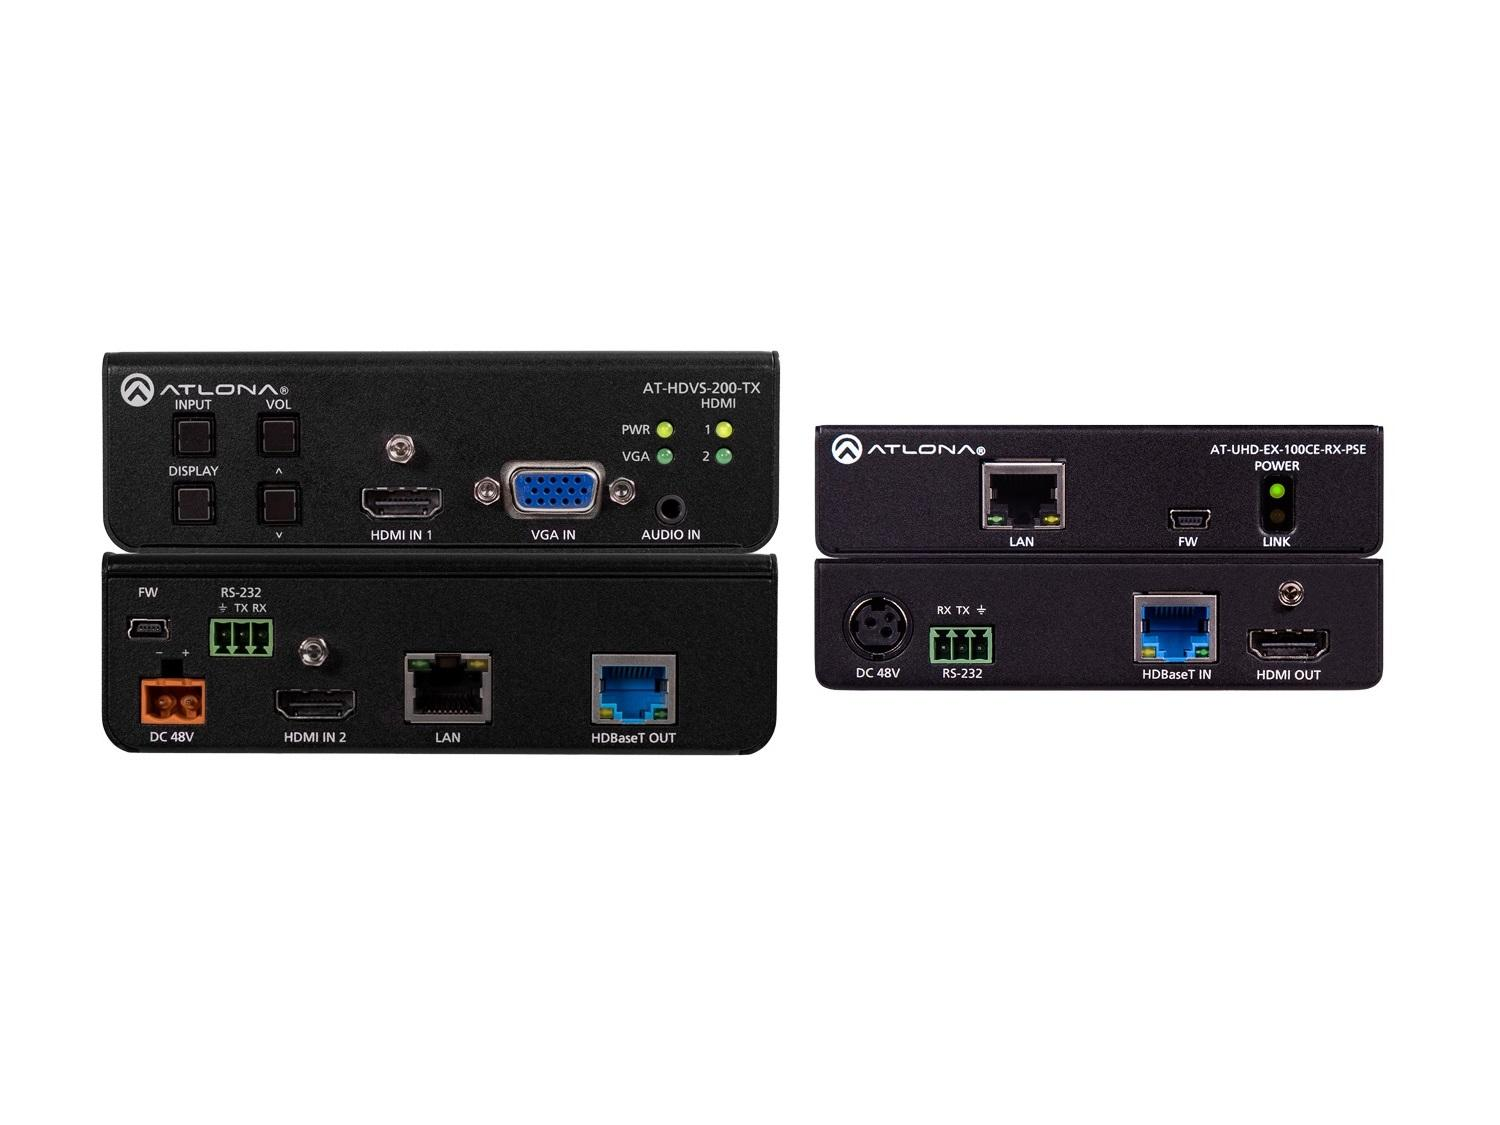 Atlona 4K-HDVS-EXT 4K/UHD HDBaseT PoE Extender (Transmitter/Receiver) Kit with Switcher